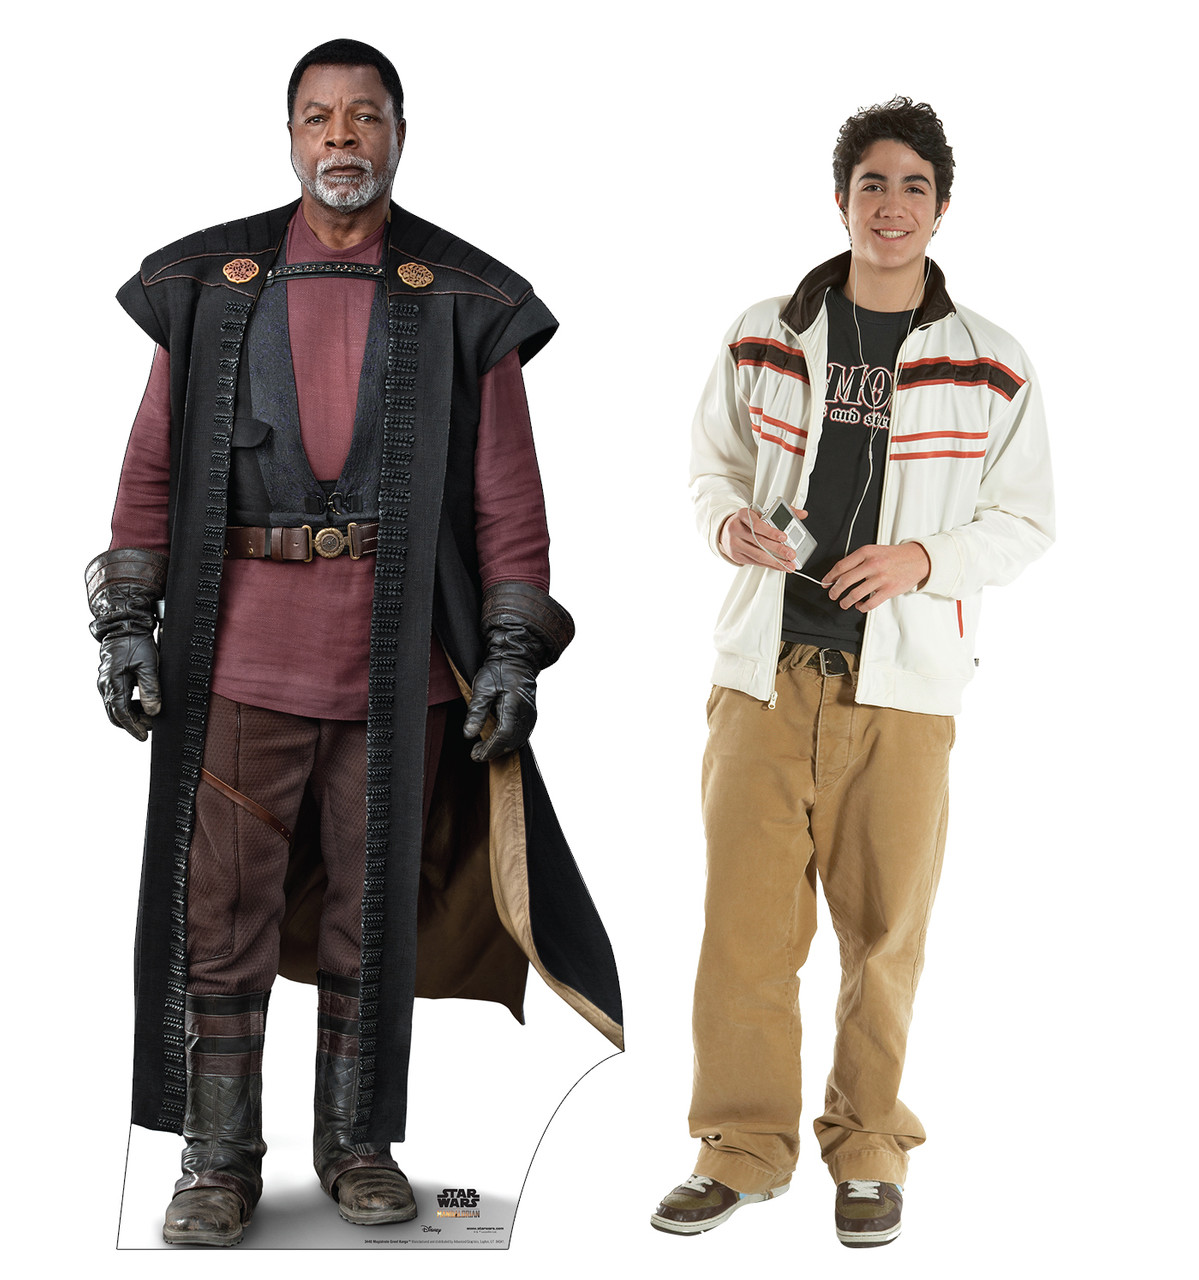 Life-size cardboard standee of Magistrate Greef Karga with model.